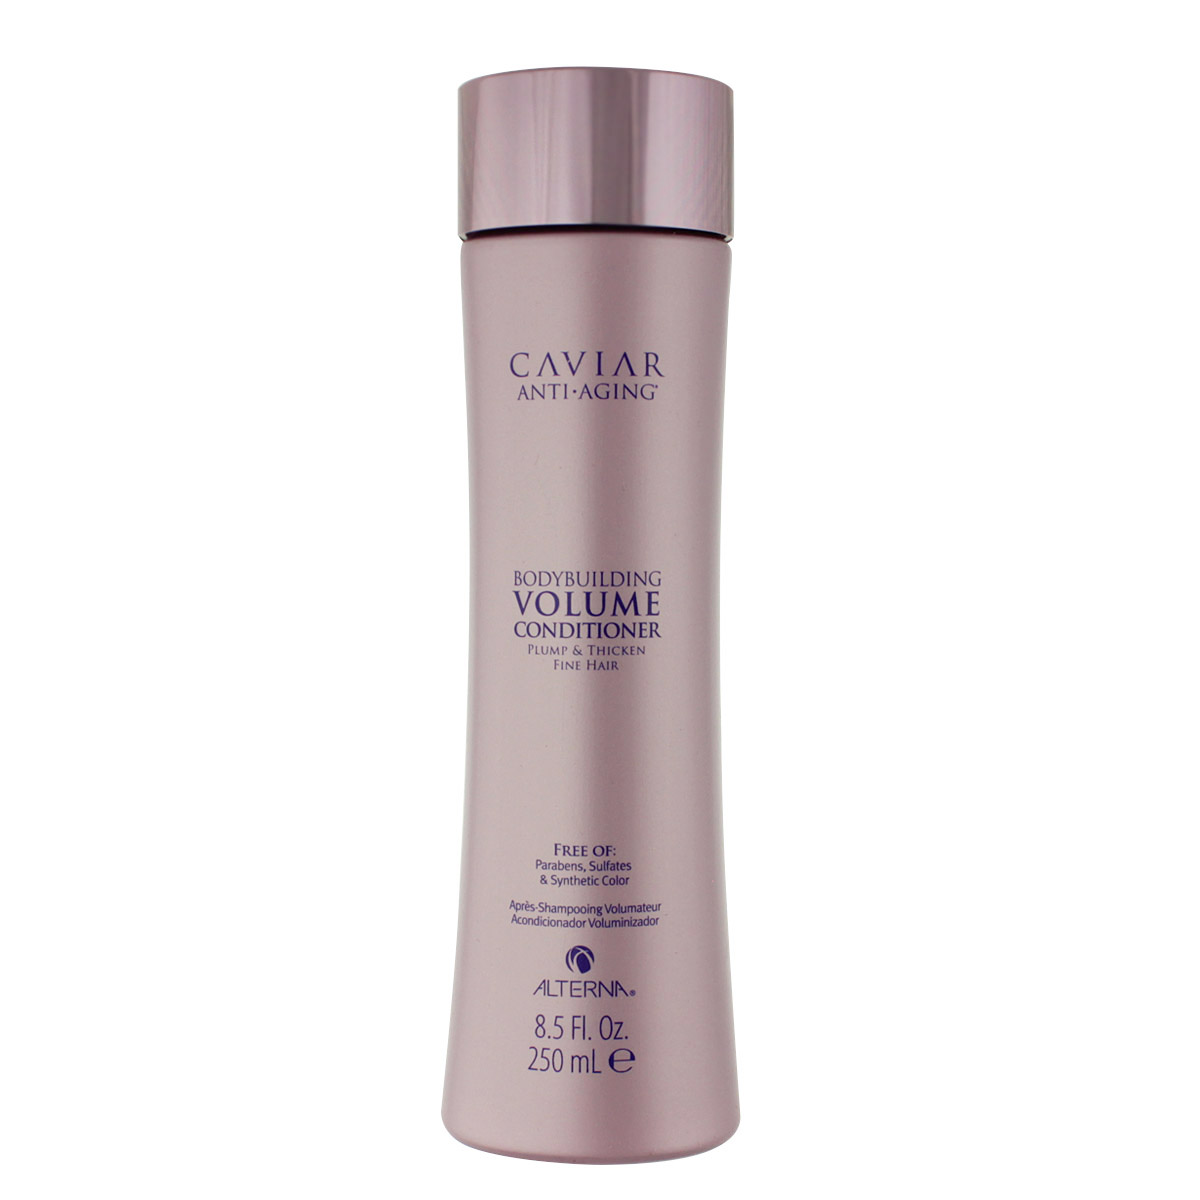 Alterna Caviar Bodybuilding Volume Conditioner 250 ml 78836